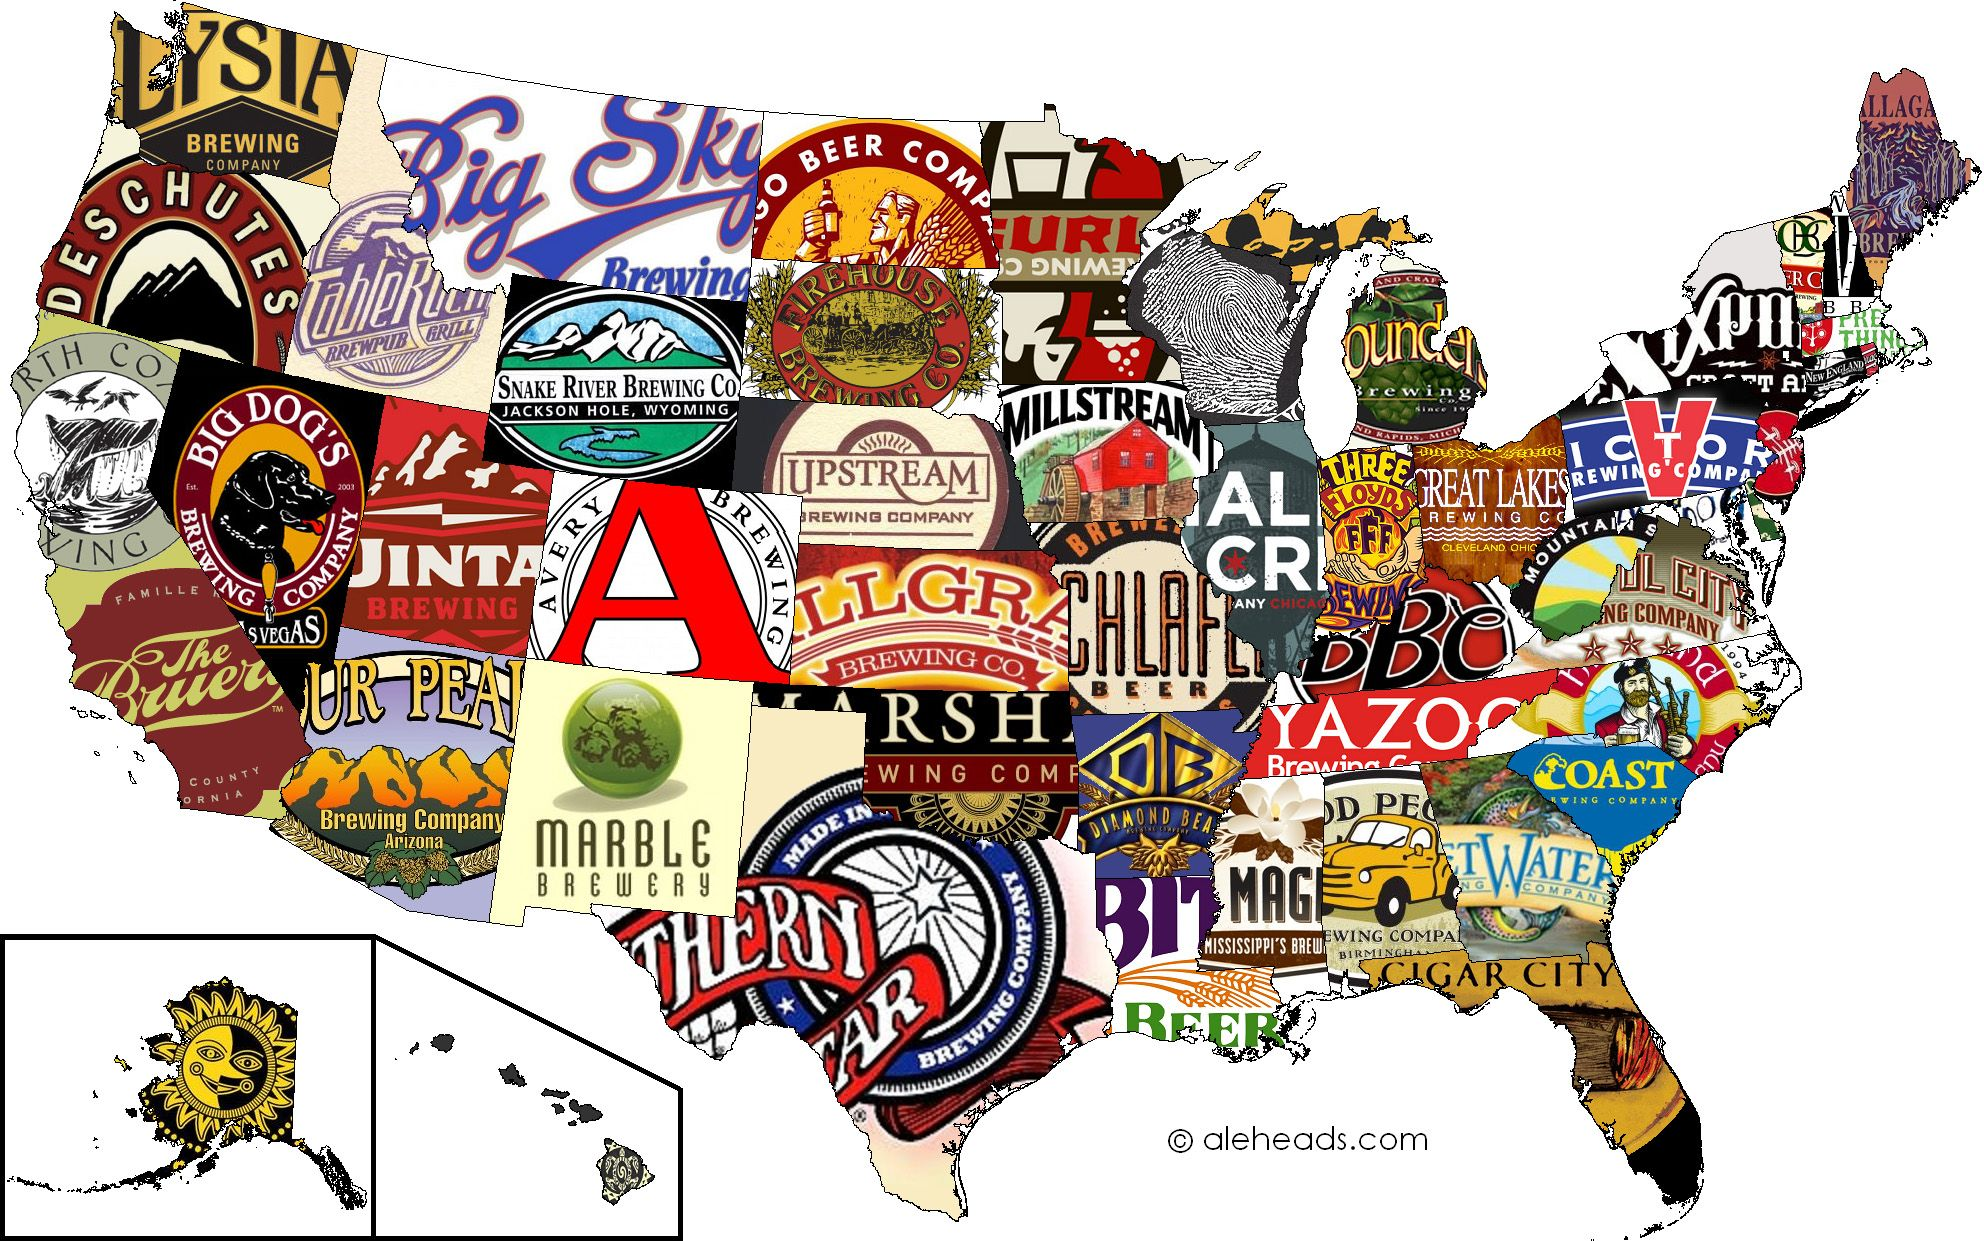 The Best Beer By State (Good arrticle ranking the best craft beers